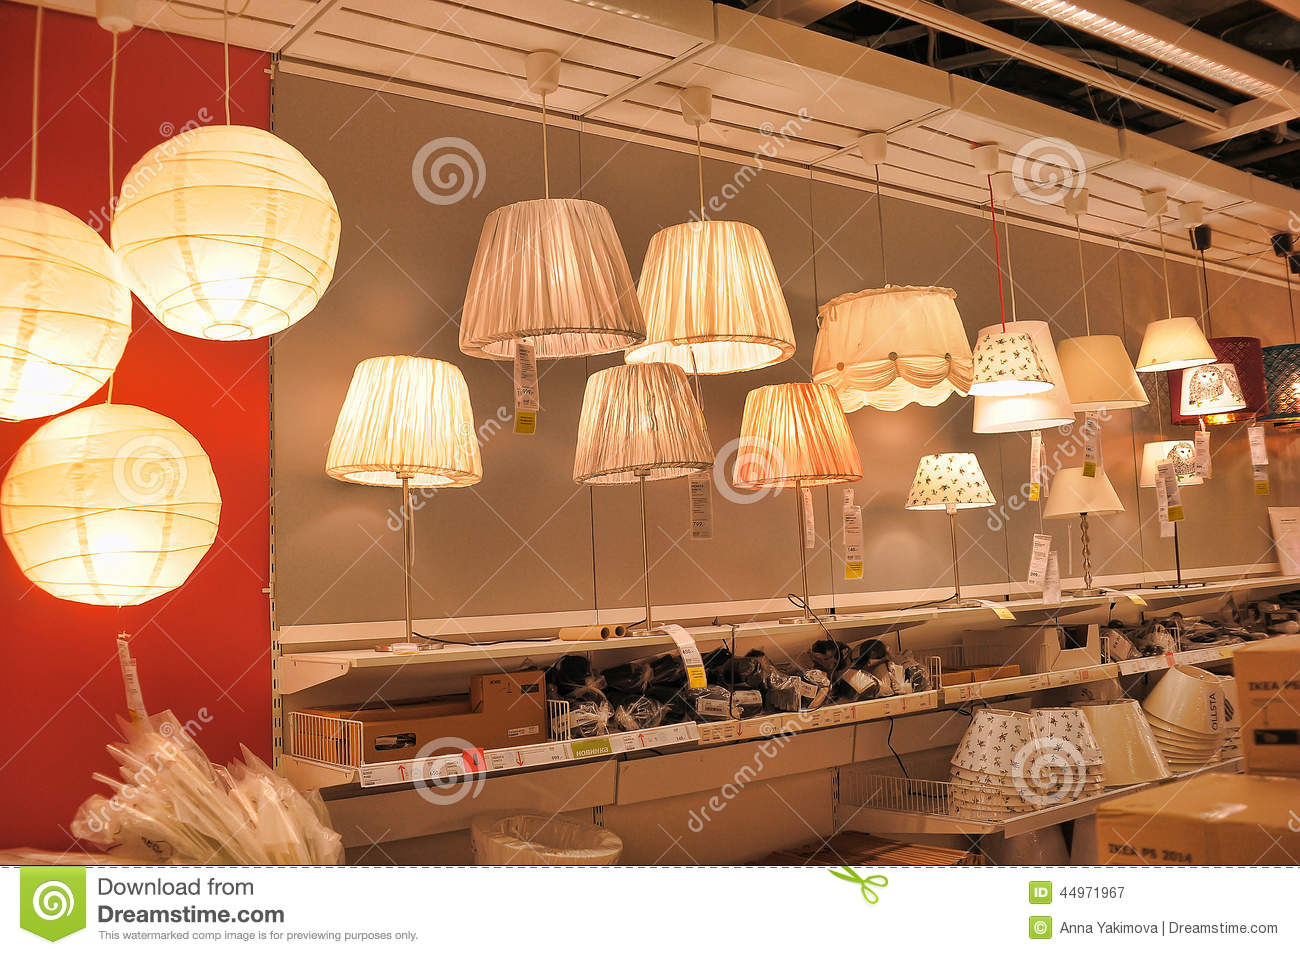 inside lighting. Lamps And Lighting Fixtures In The Store Inside R